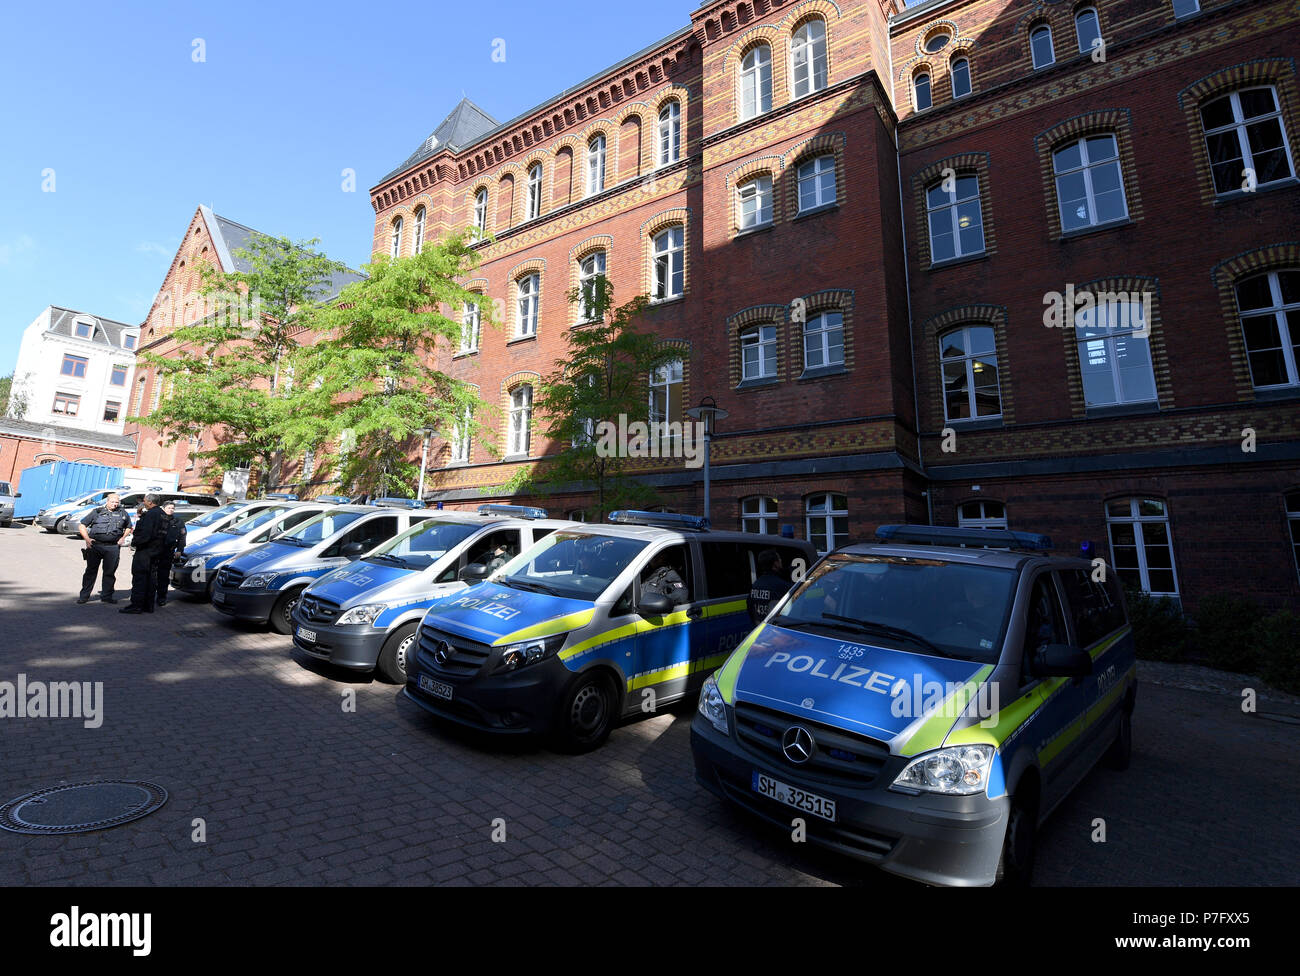 Flensburg, Germany. 06th July, 2018. Police vehicles standing in front of the district court before a murder trial. The district court is pronouncing their verdict in the murder trial against the two 20-year-olds, who woke up a coeval in the night before Easter Sunday 2017 and stabbed him by the front door. Credit: Carsten Rehder/dpa/Alamy Live News - Stock Image